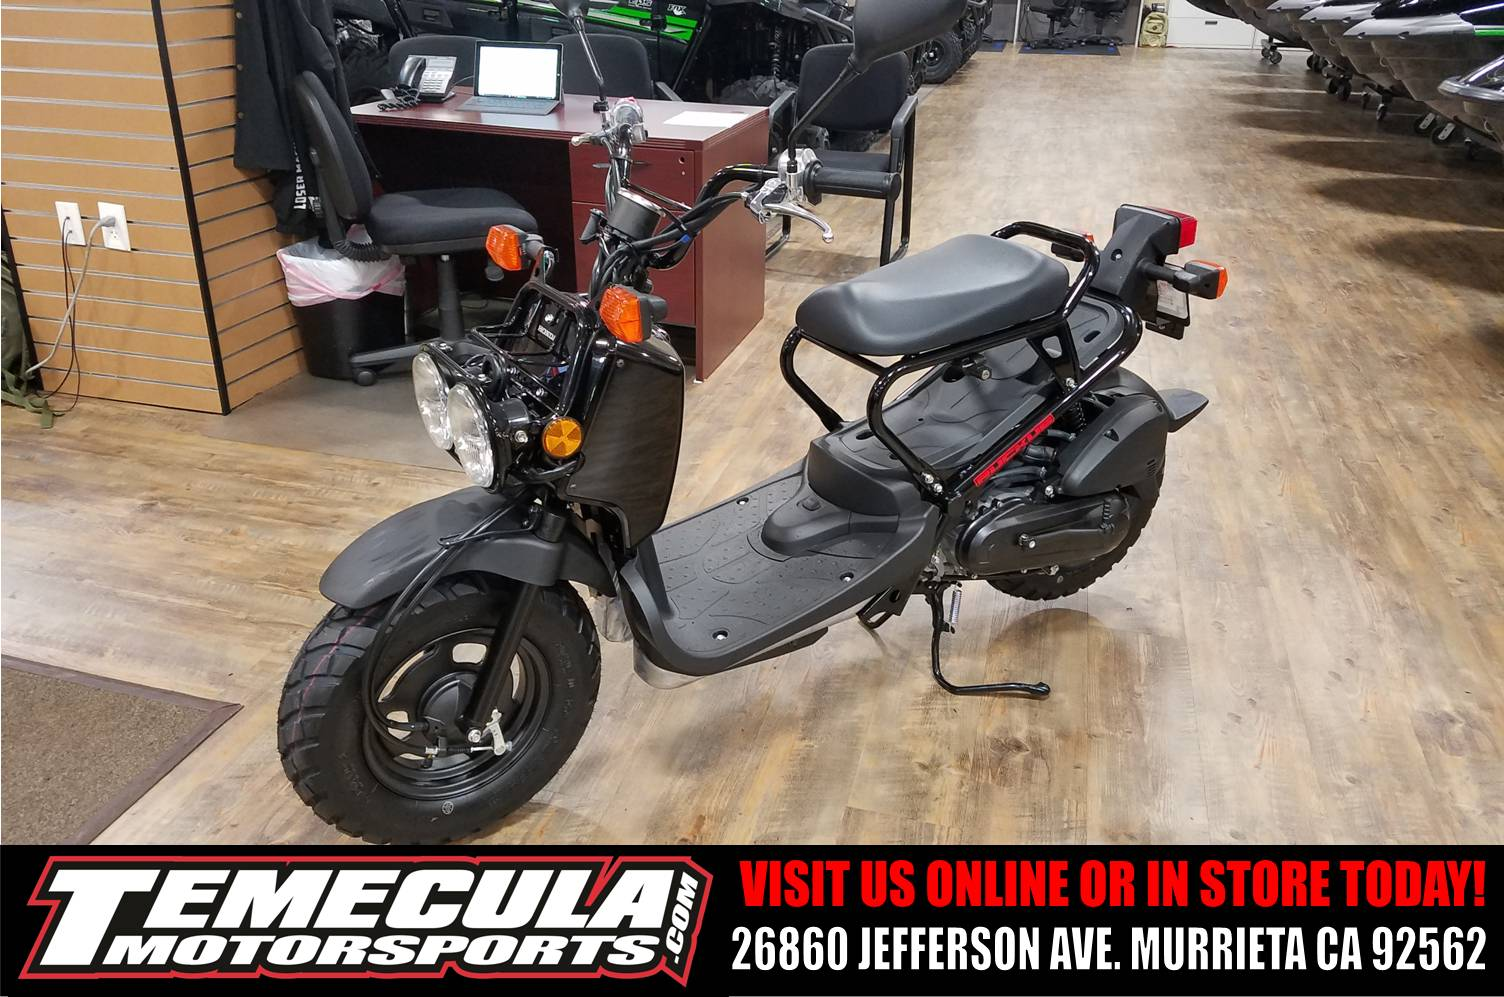 hatcher honda ruckus parts greg motorcycle article mnnthbx and the usa